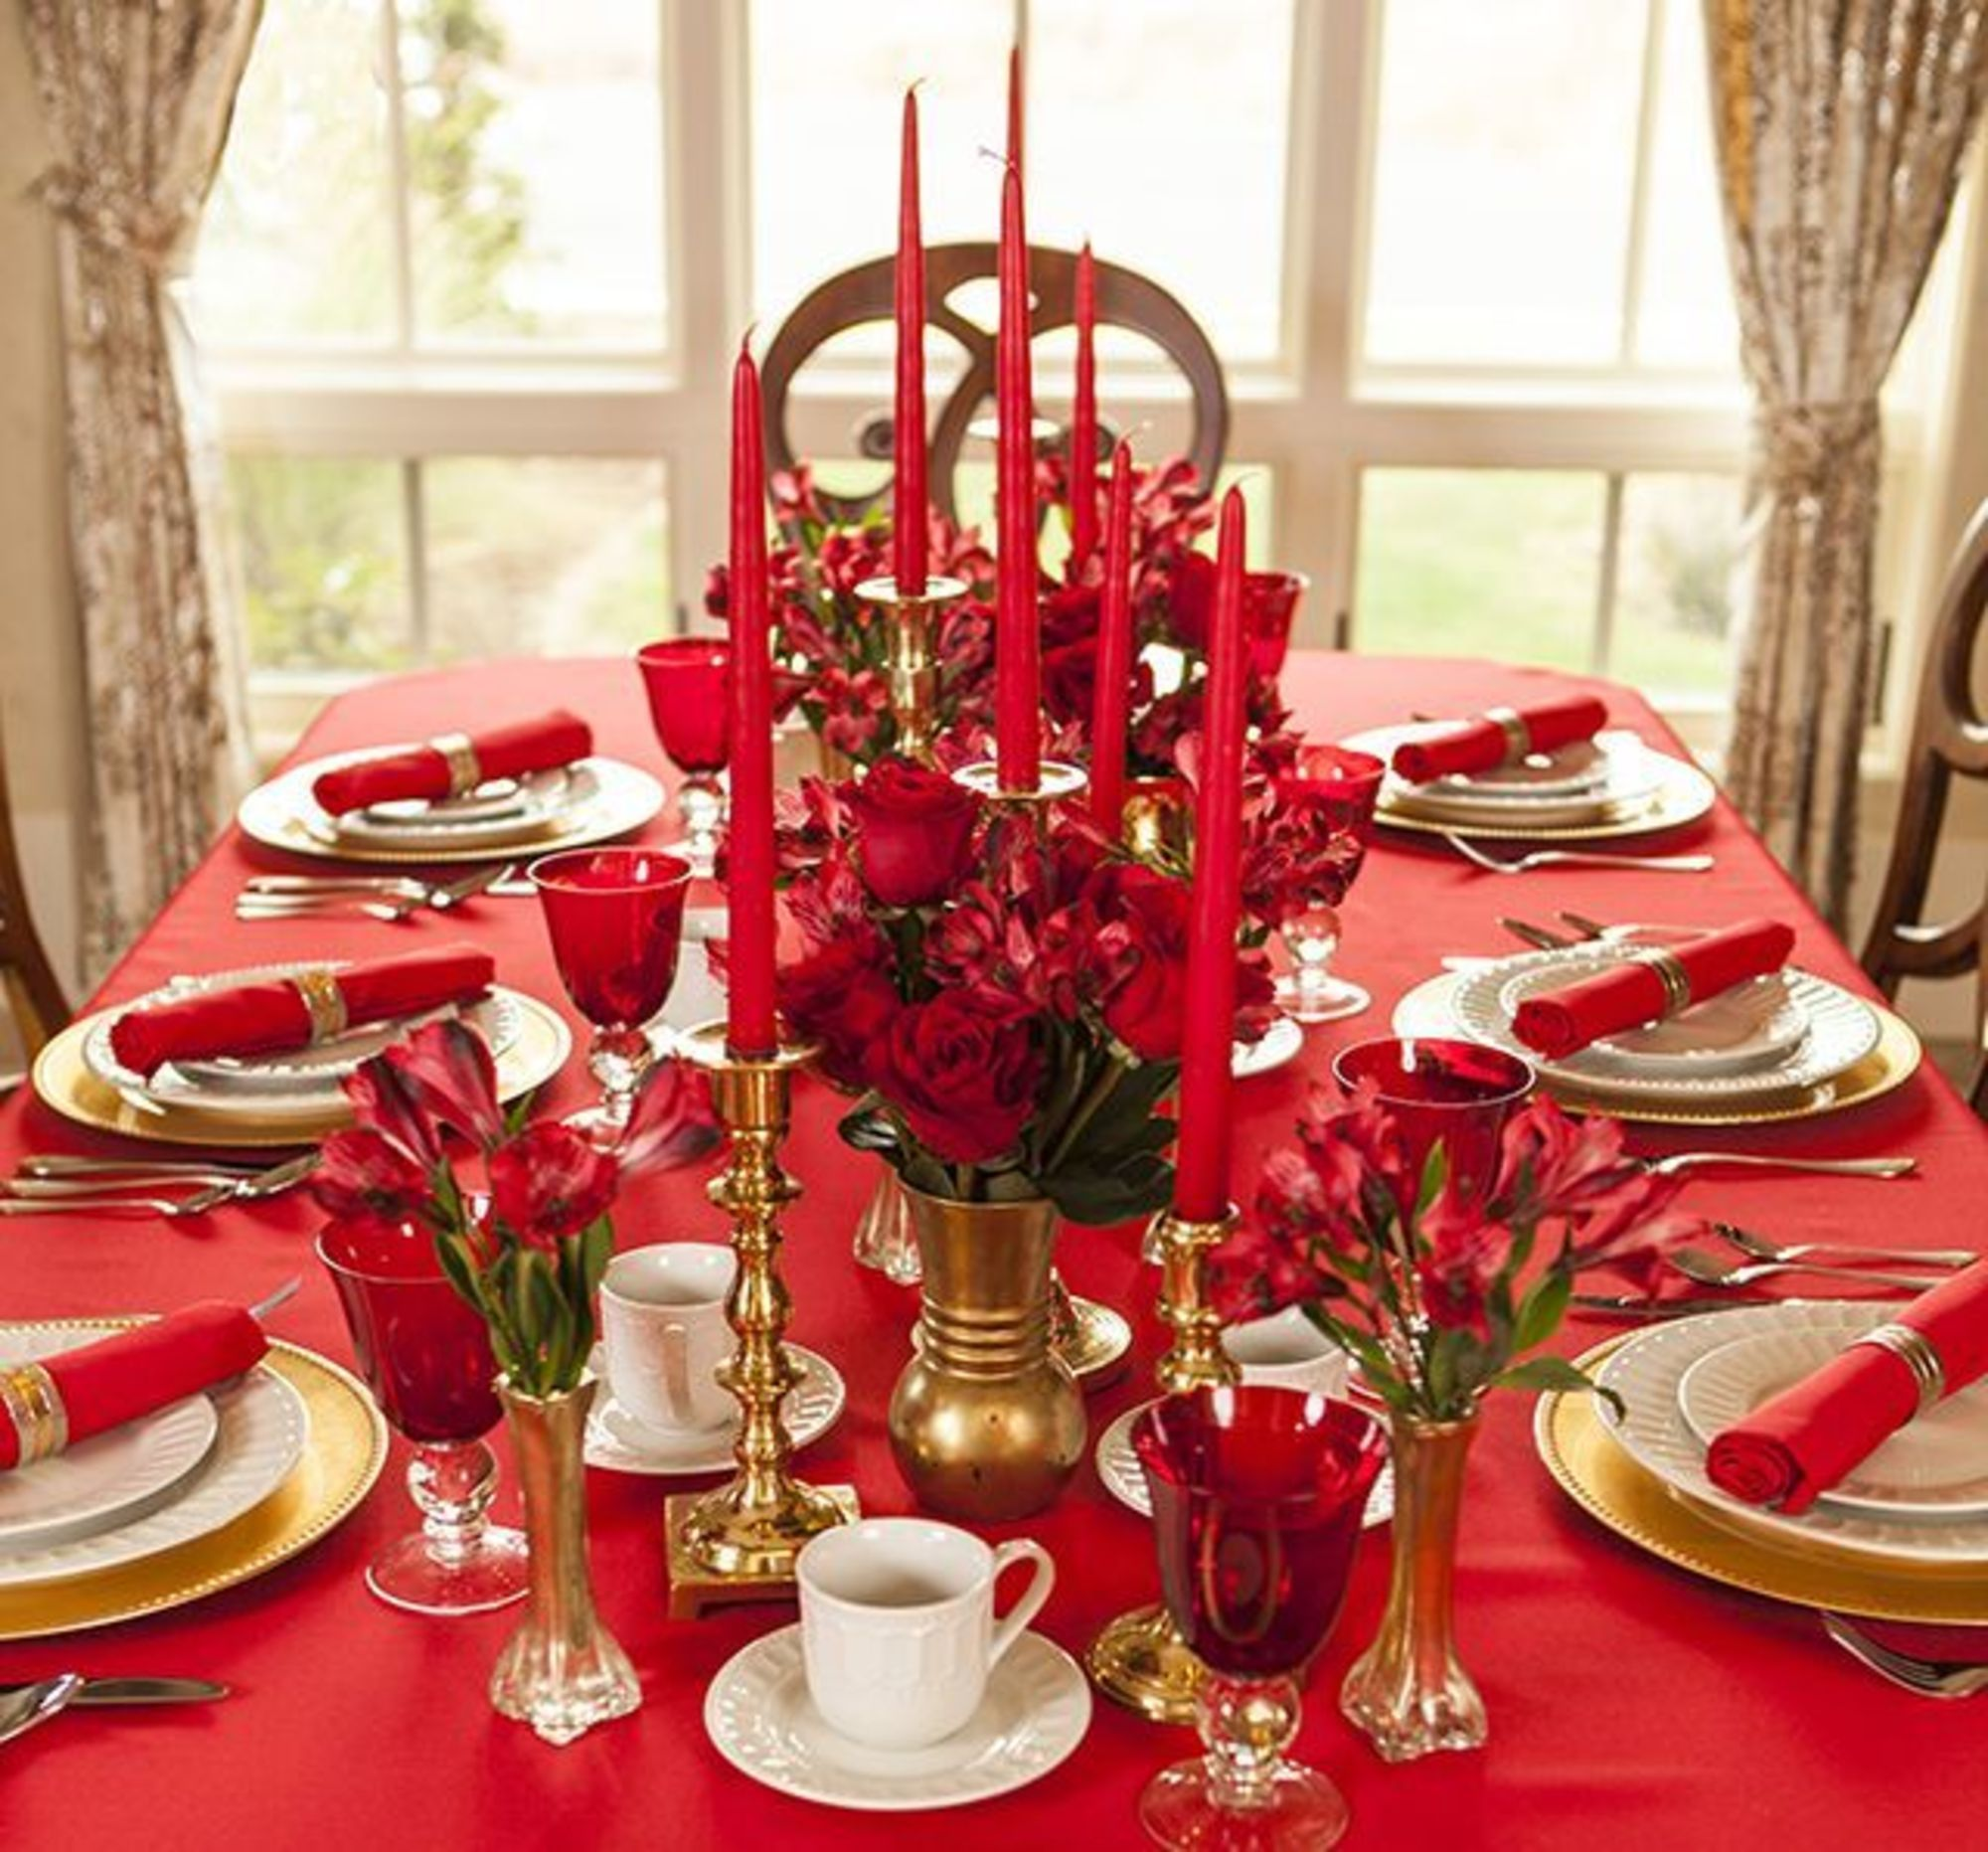 D co table noel table de f te en rouge et or id es de marige christmas christmas - Table de fete decoration noel ...